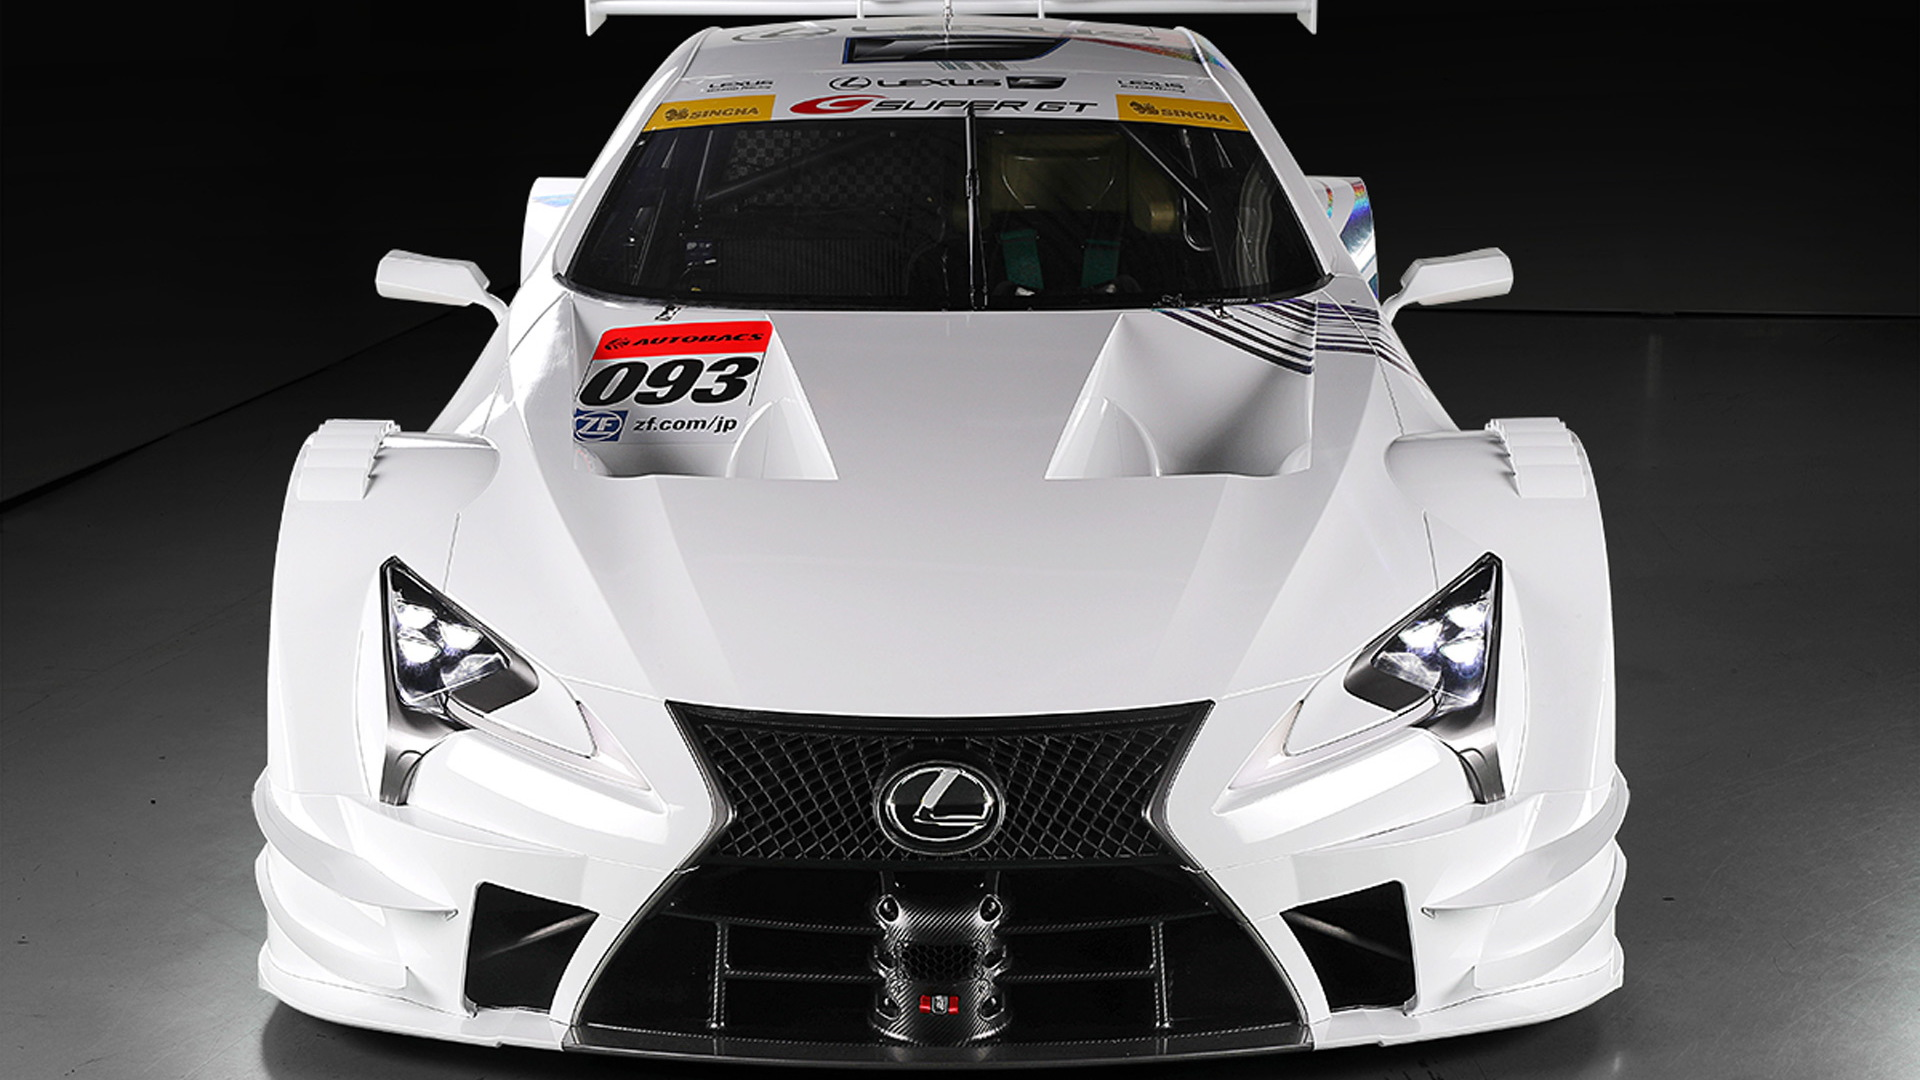 2017 Lexus LC GT500 Super GT race car